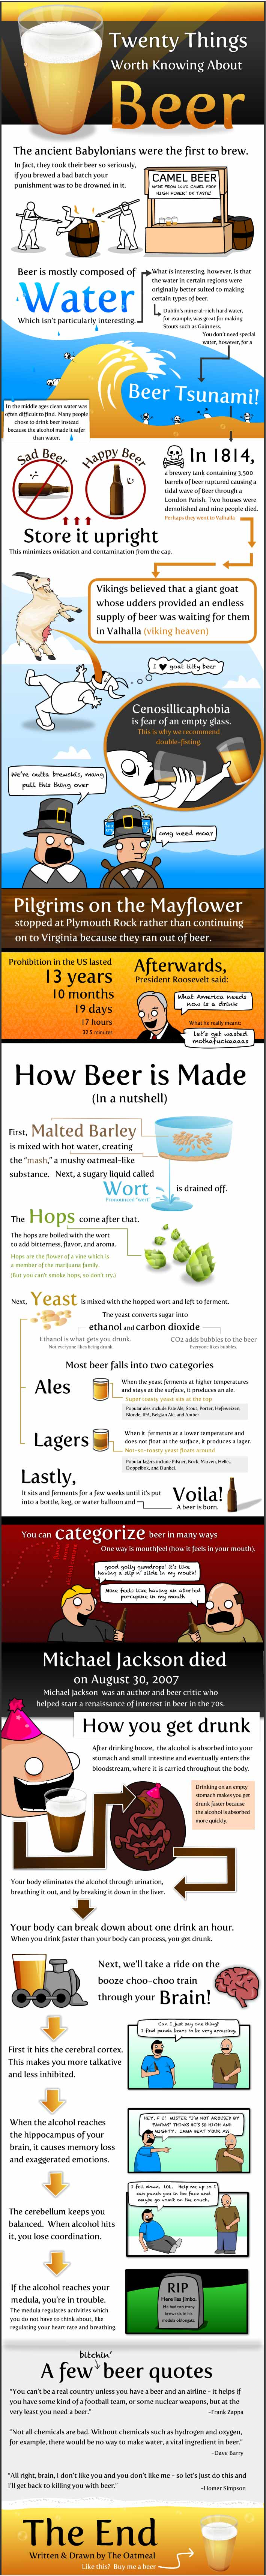 twenty things worth knowing about beer